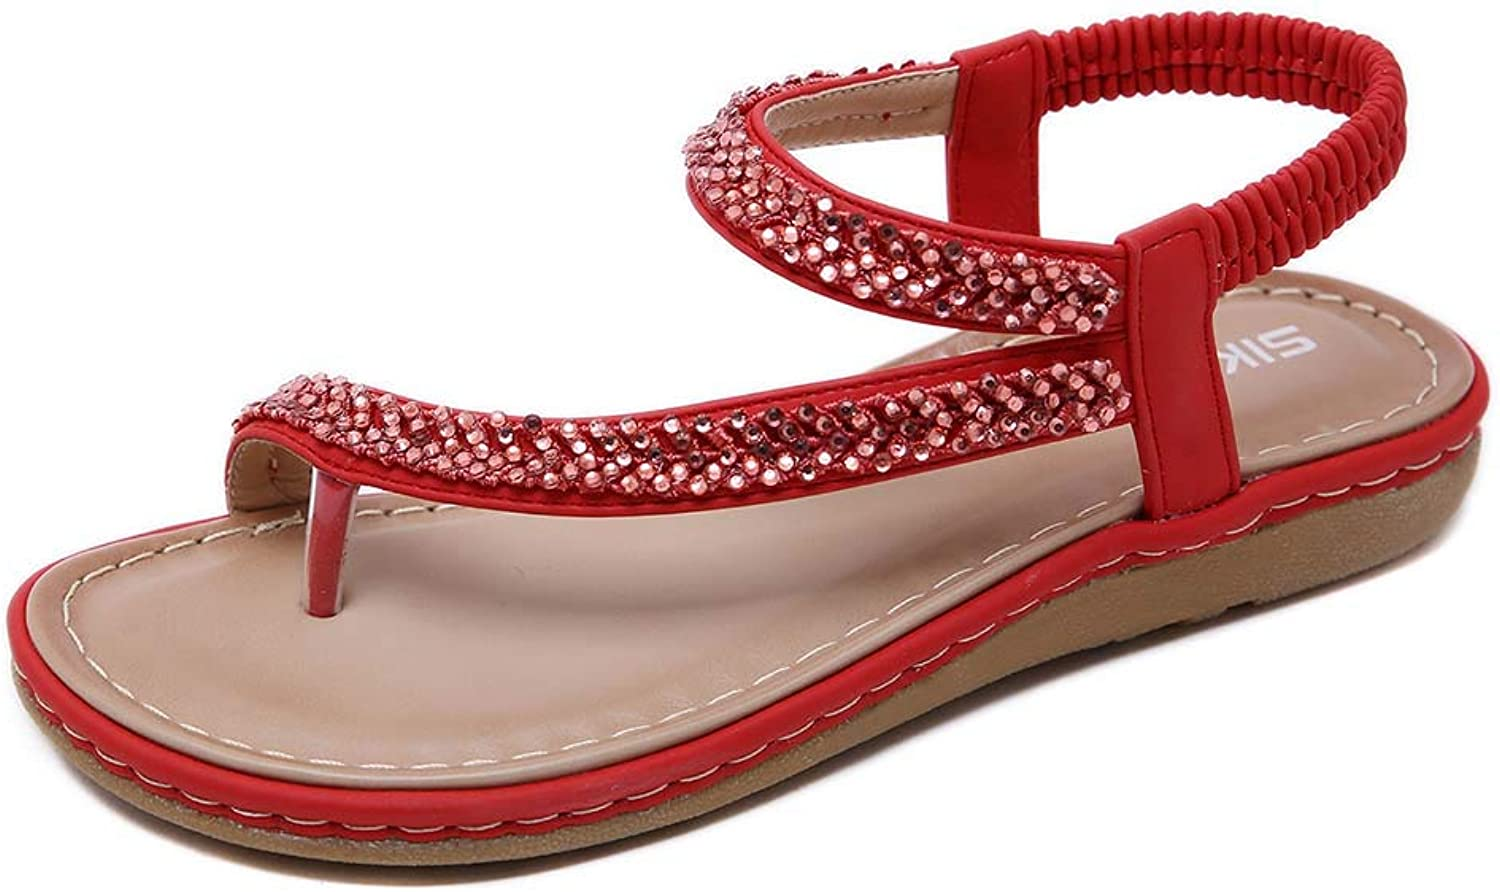 Women's PU Rhinestones Chains Elastic Strappy Flat Bohemia Sandals Summer Beach Wedding shoes,Red,41